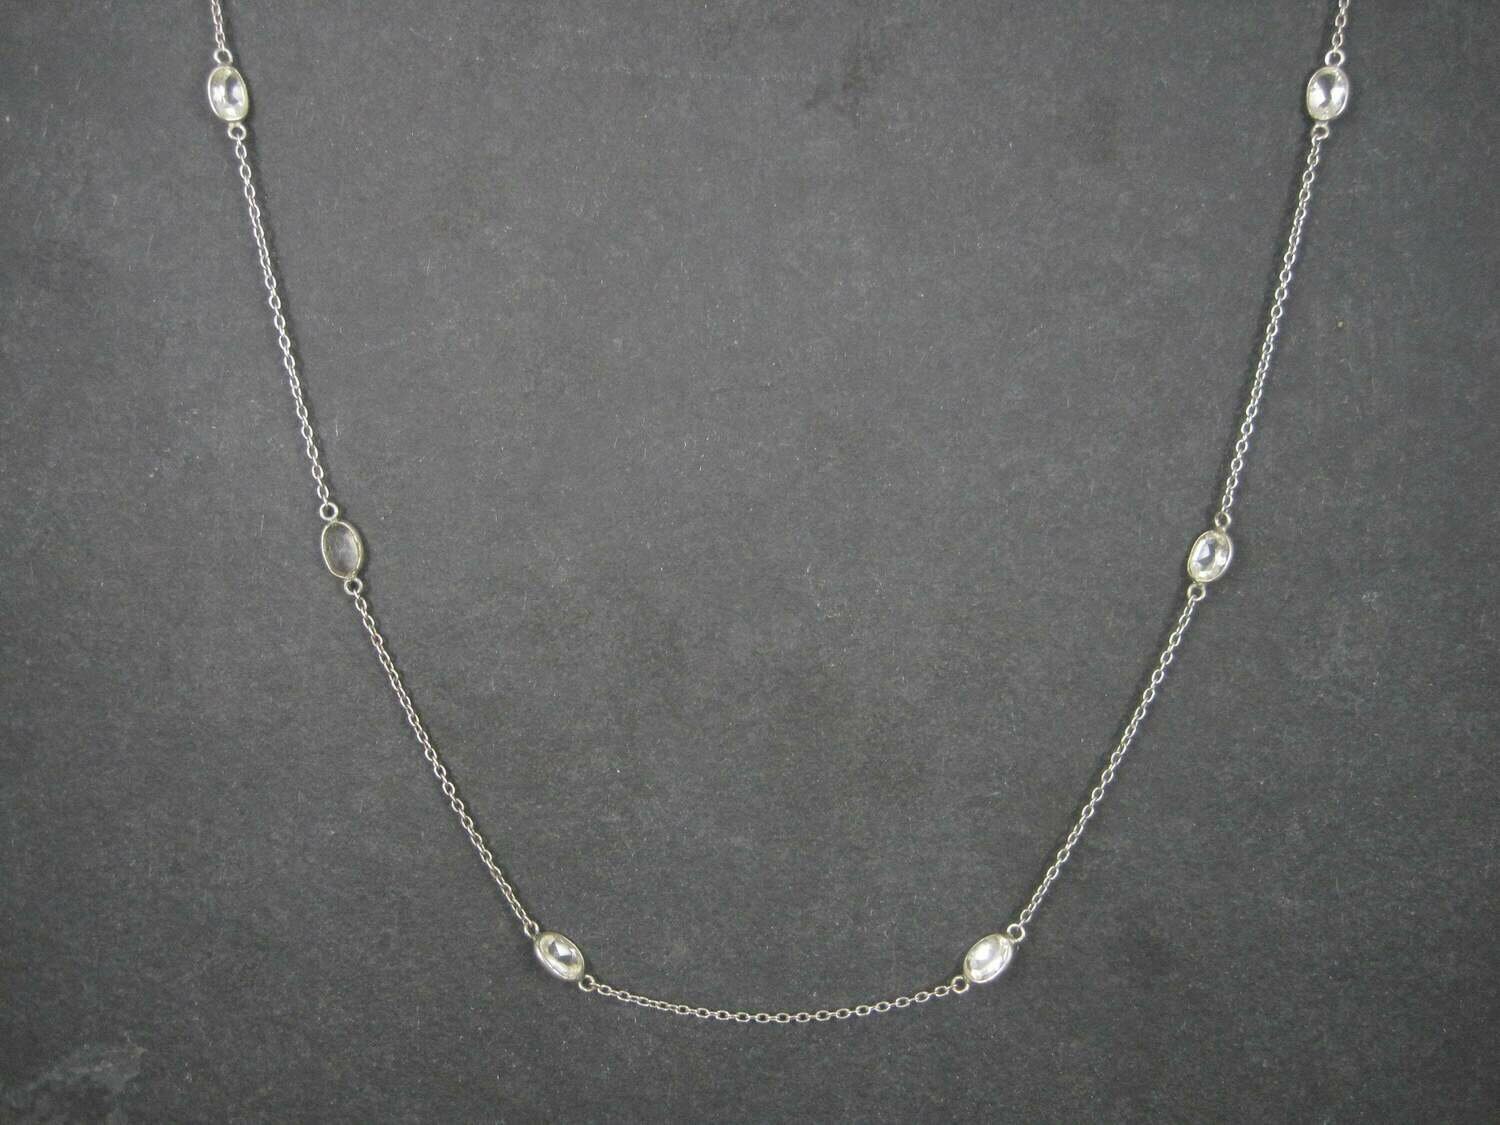 Vintage Sterling White Topaz Necklace 36 Inches